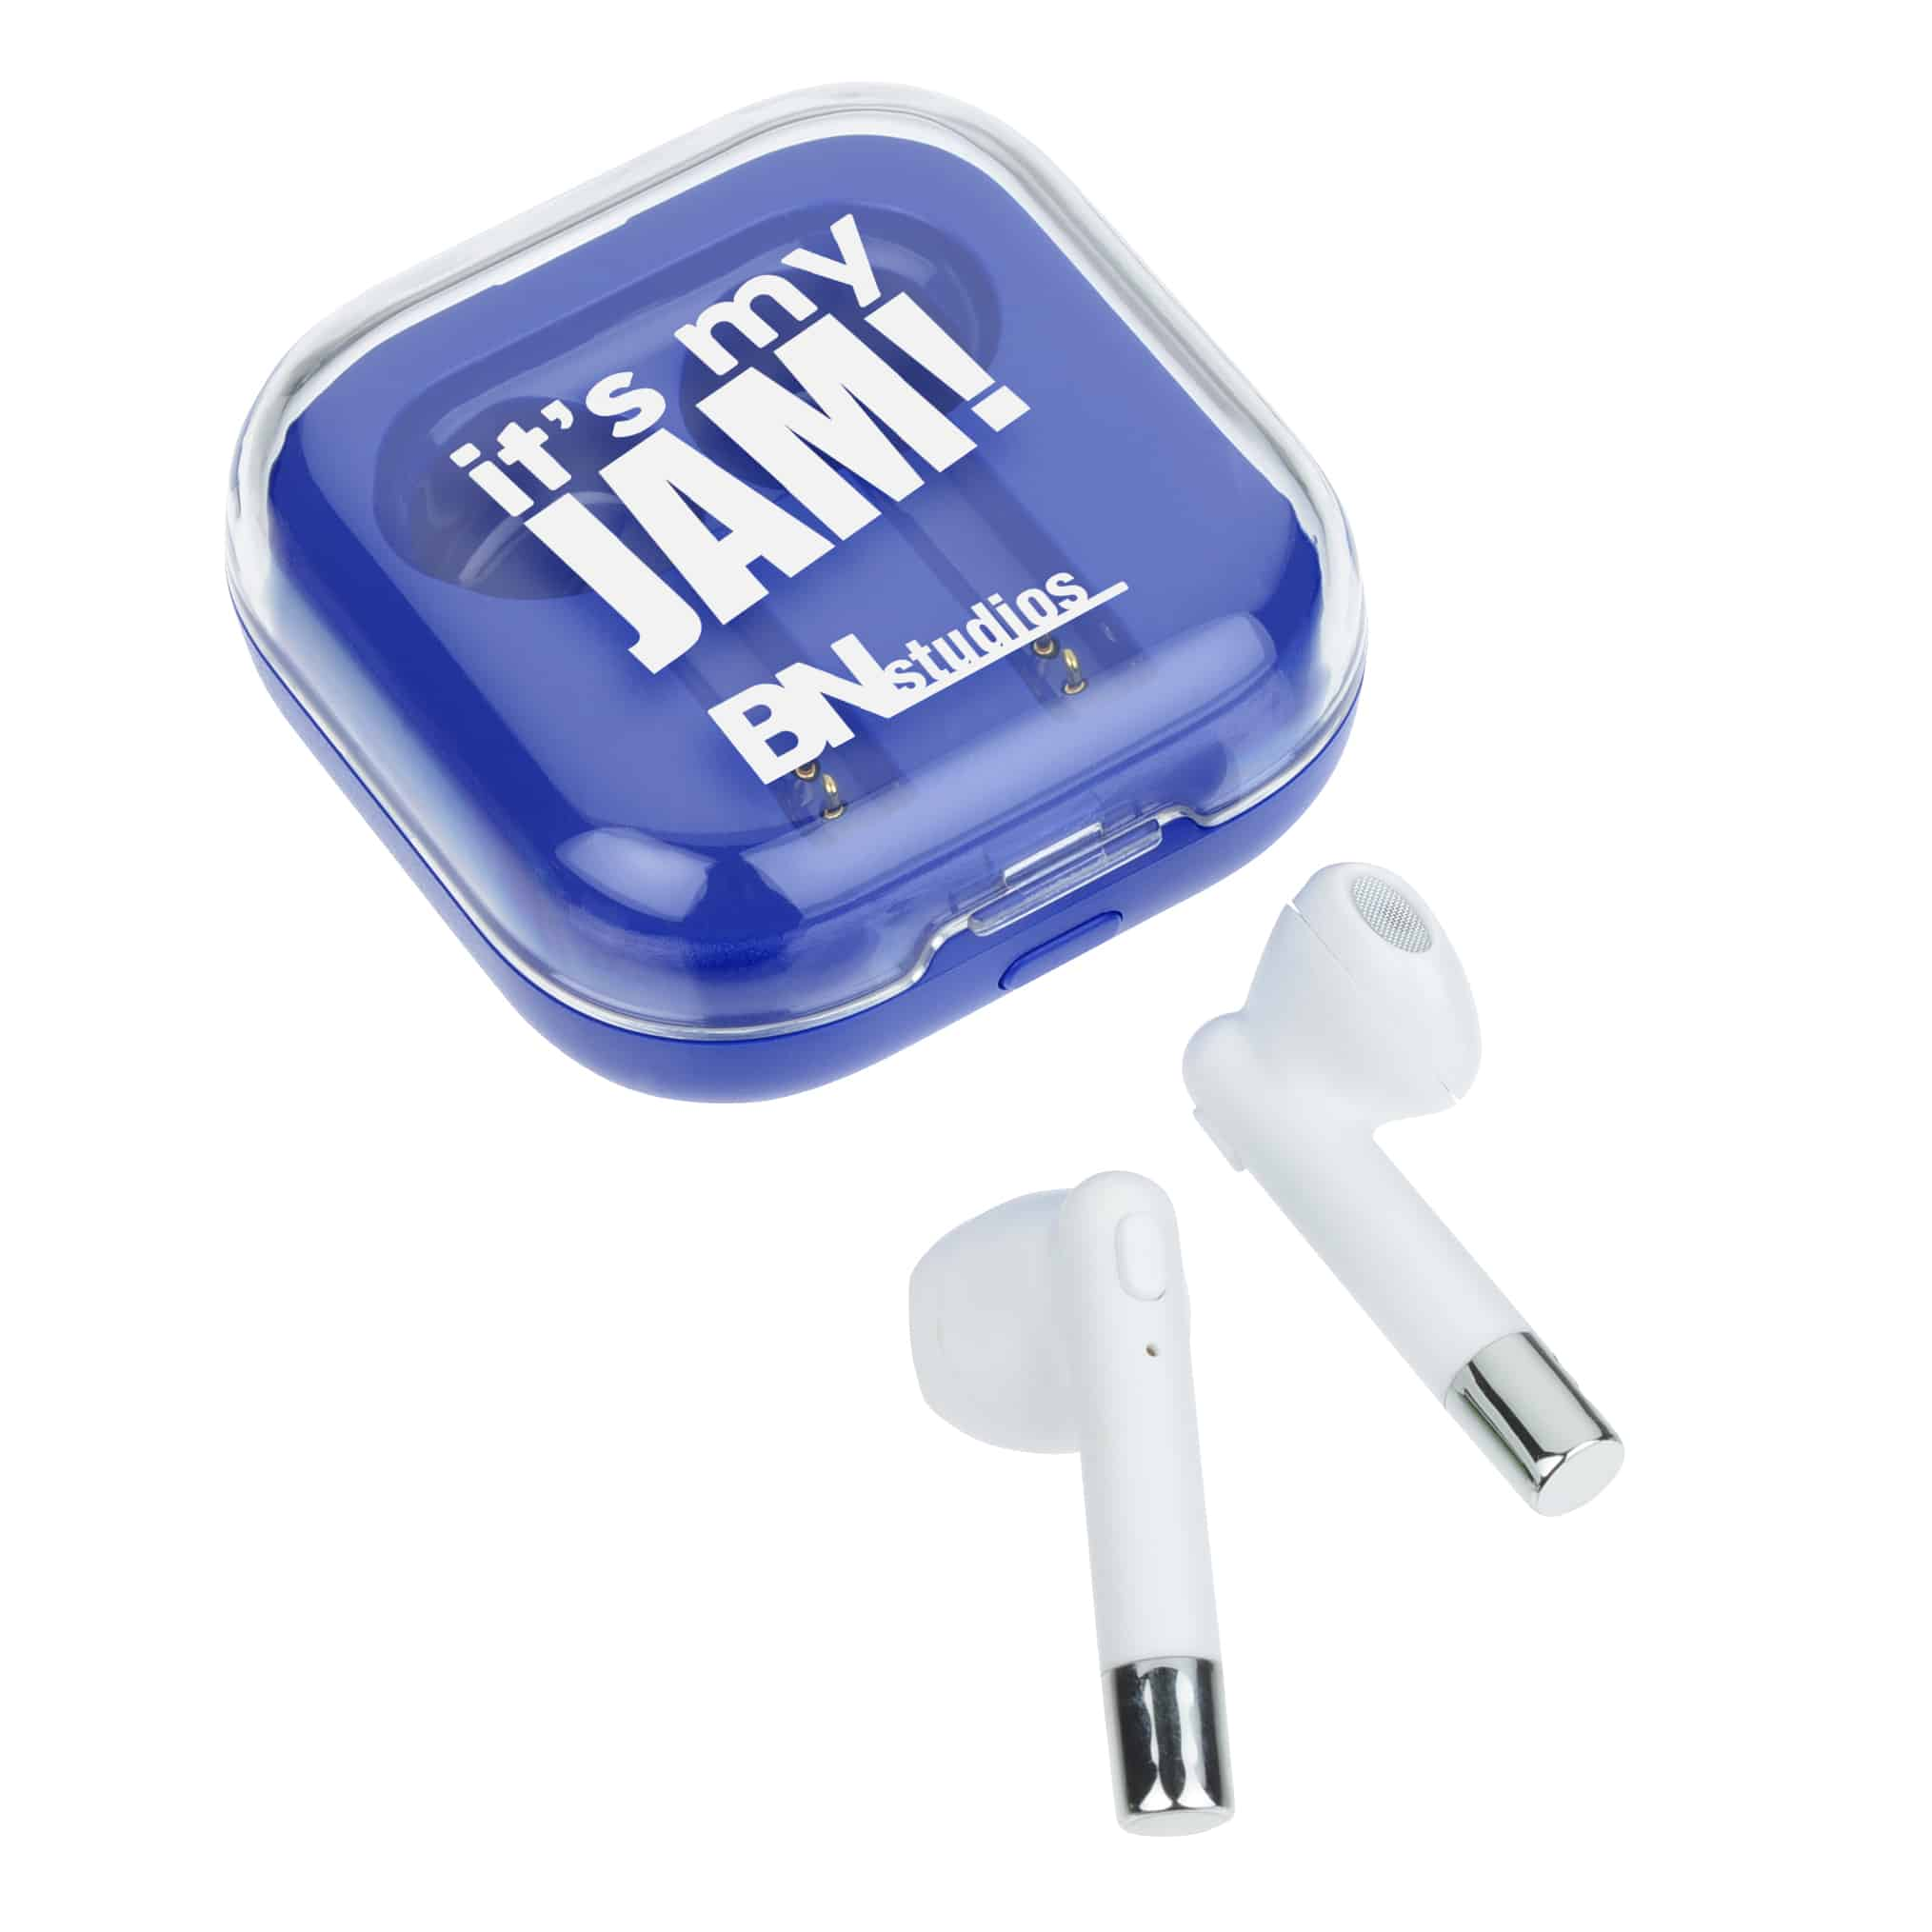 A pair of Melody True Wireless Ear Buds with Charging Case.